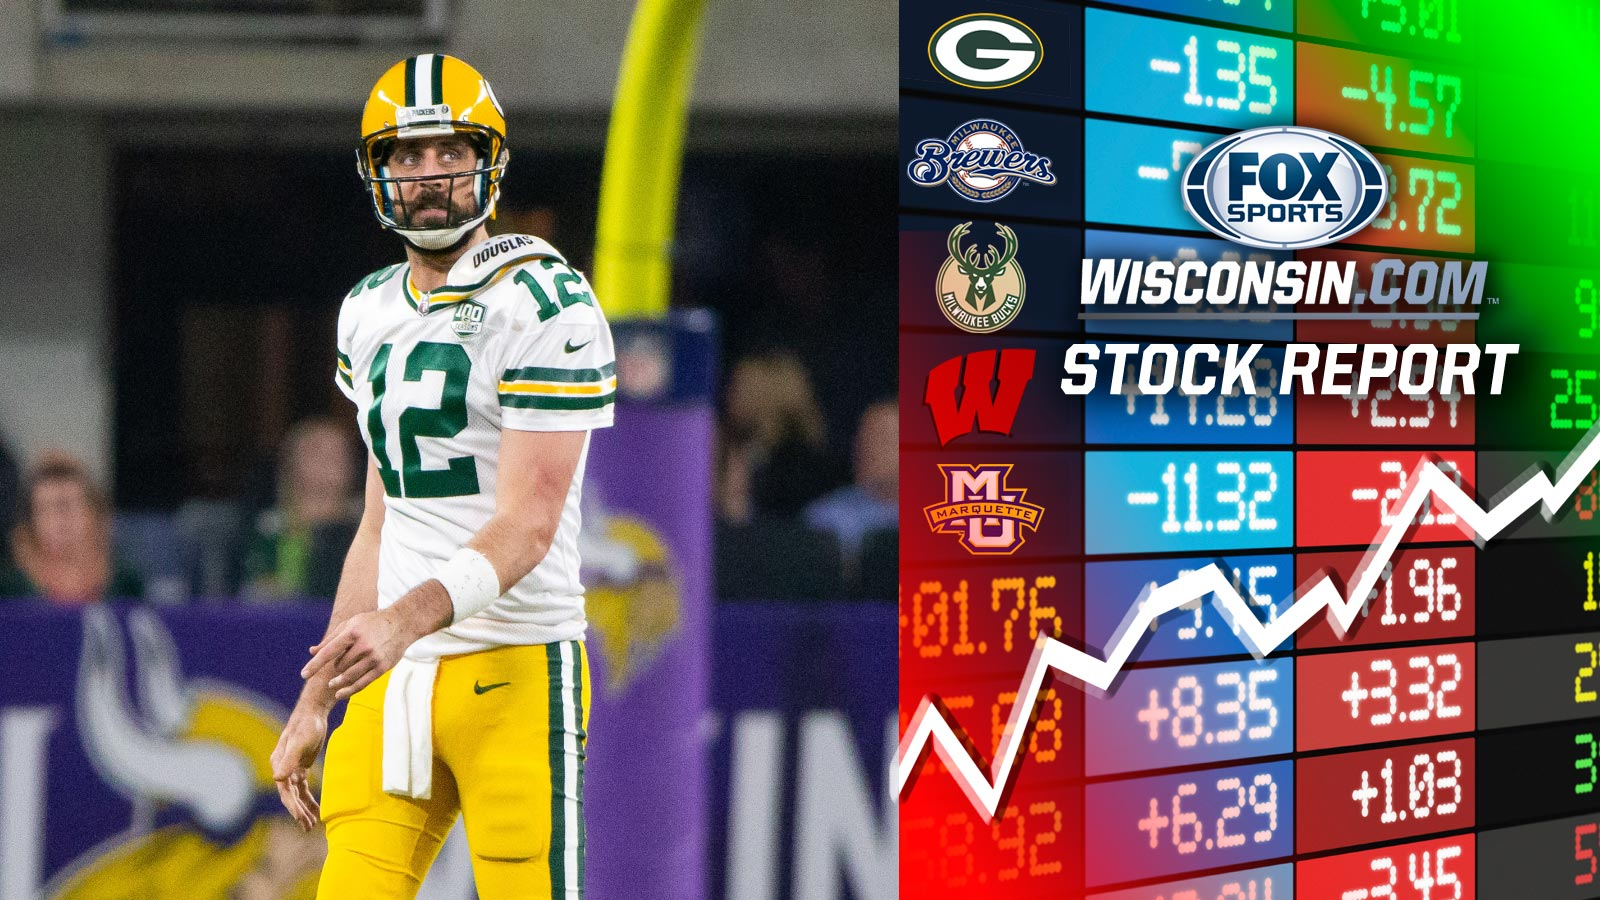 pi-wi-stock-report-packers-aaron-rodgers